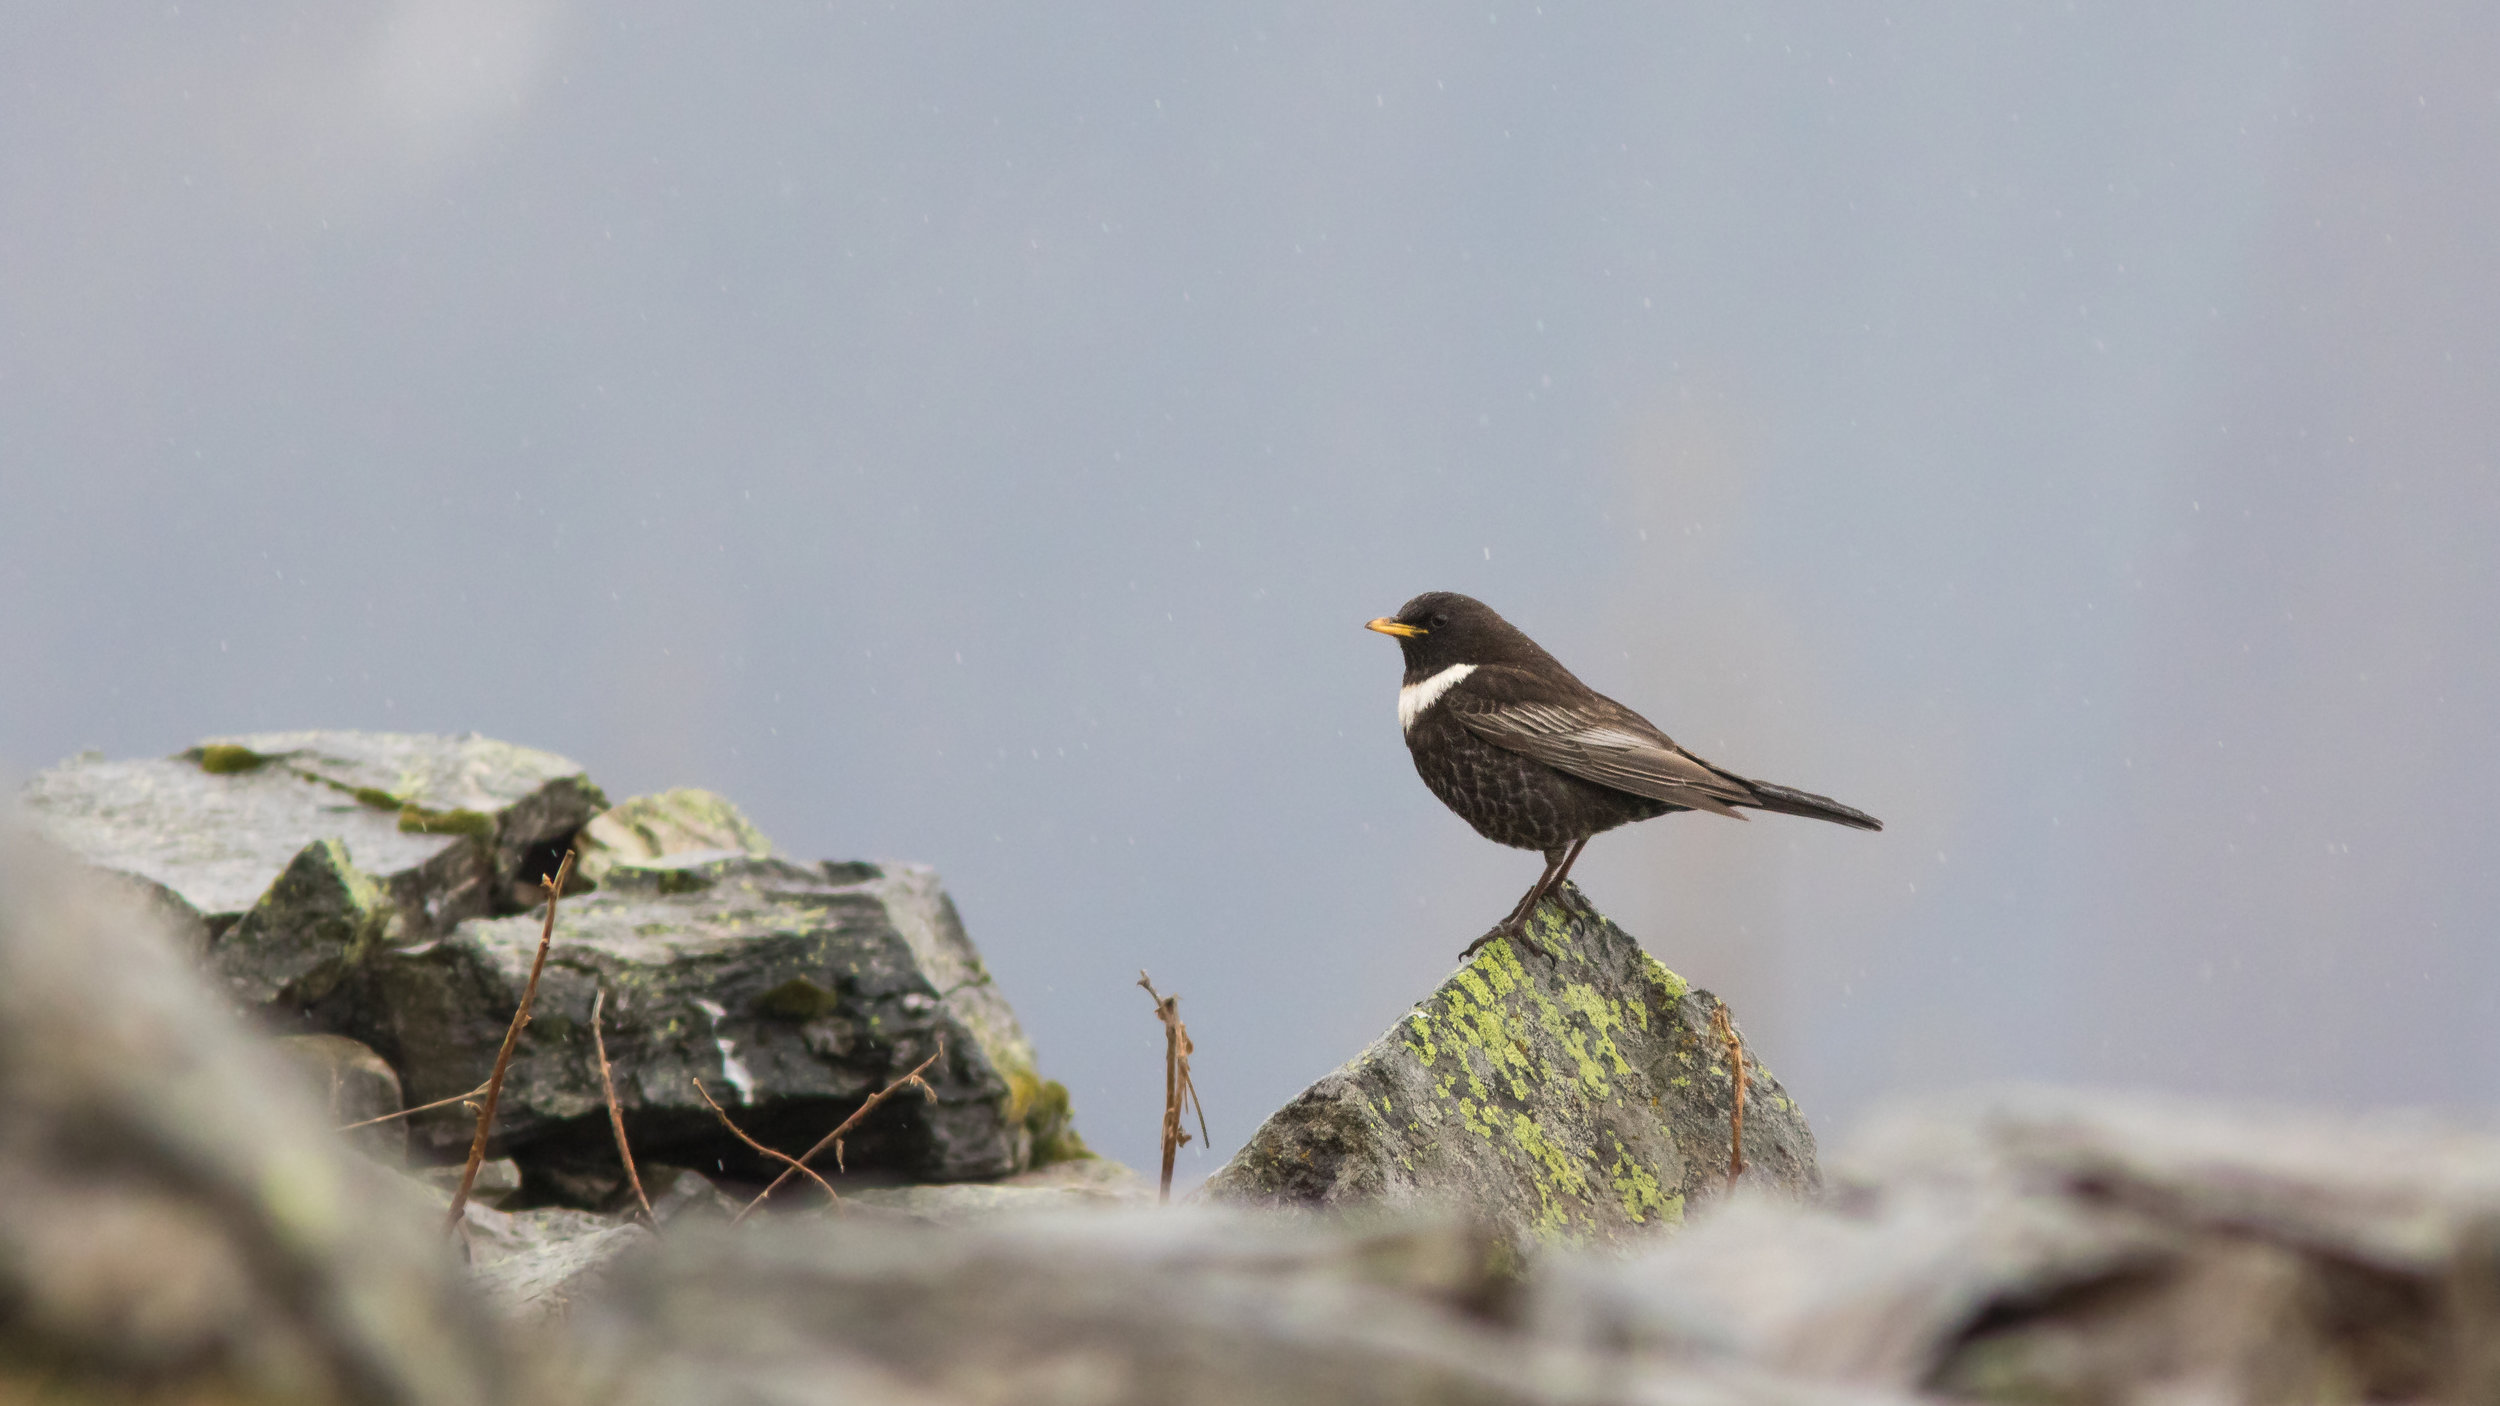 Ring Ouzel (Turdus torquatus) in Chamonix area, France. April 2015. Not baited. Not called in.